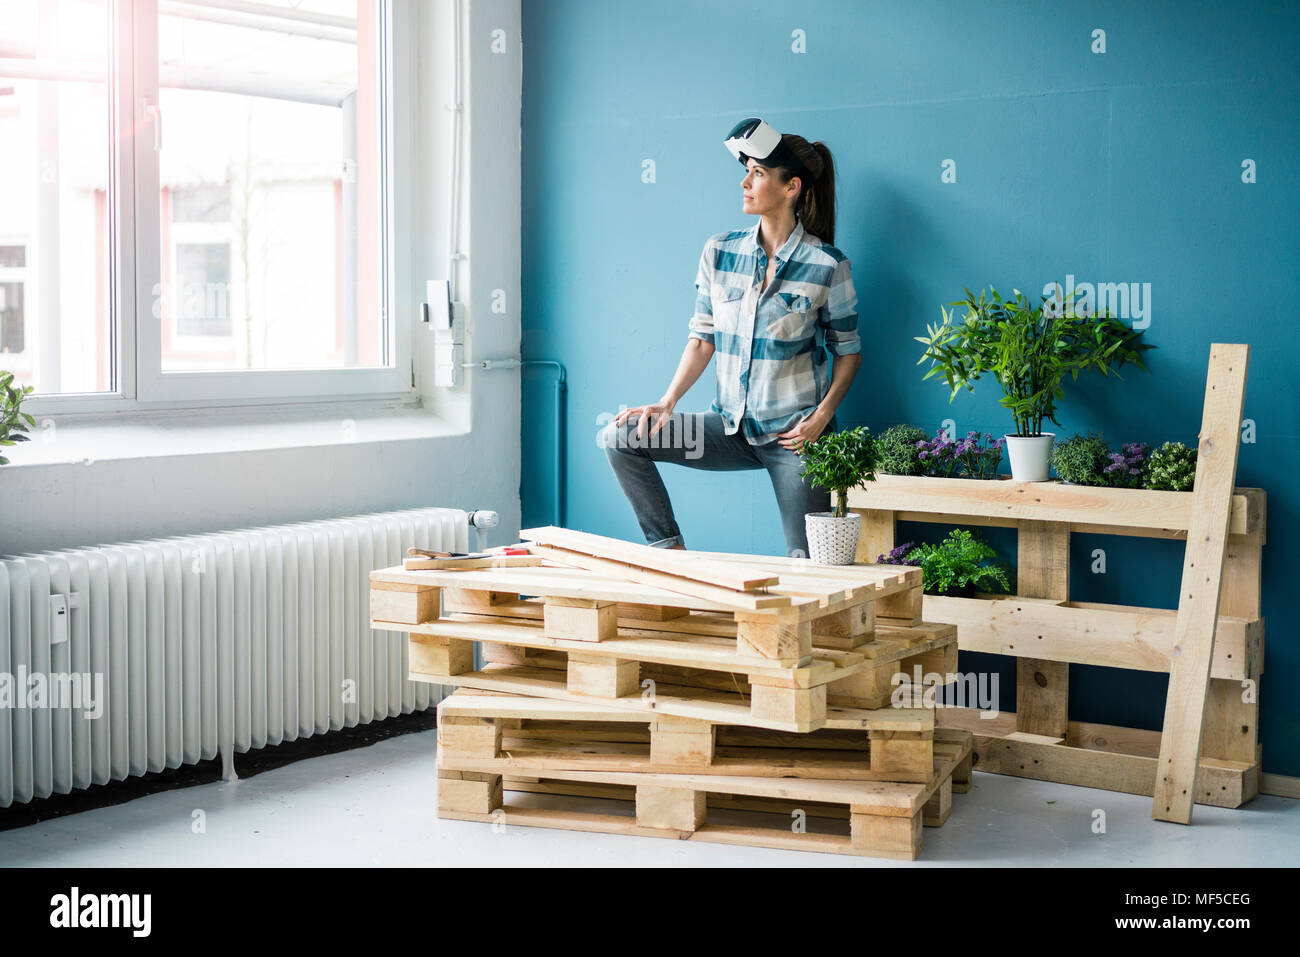 Woman using VR glasses, renovating her new home - Stock Image